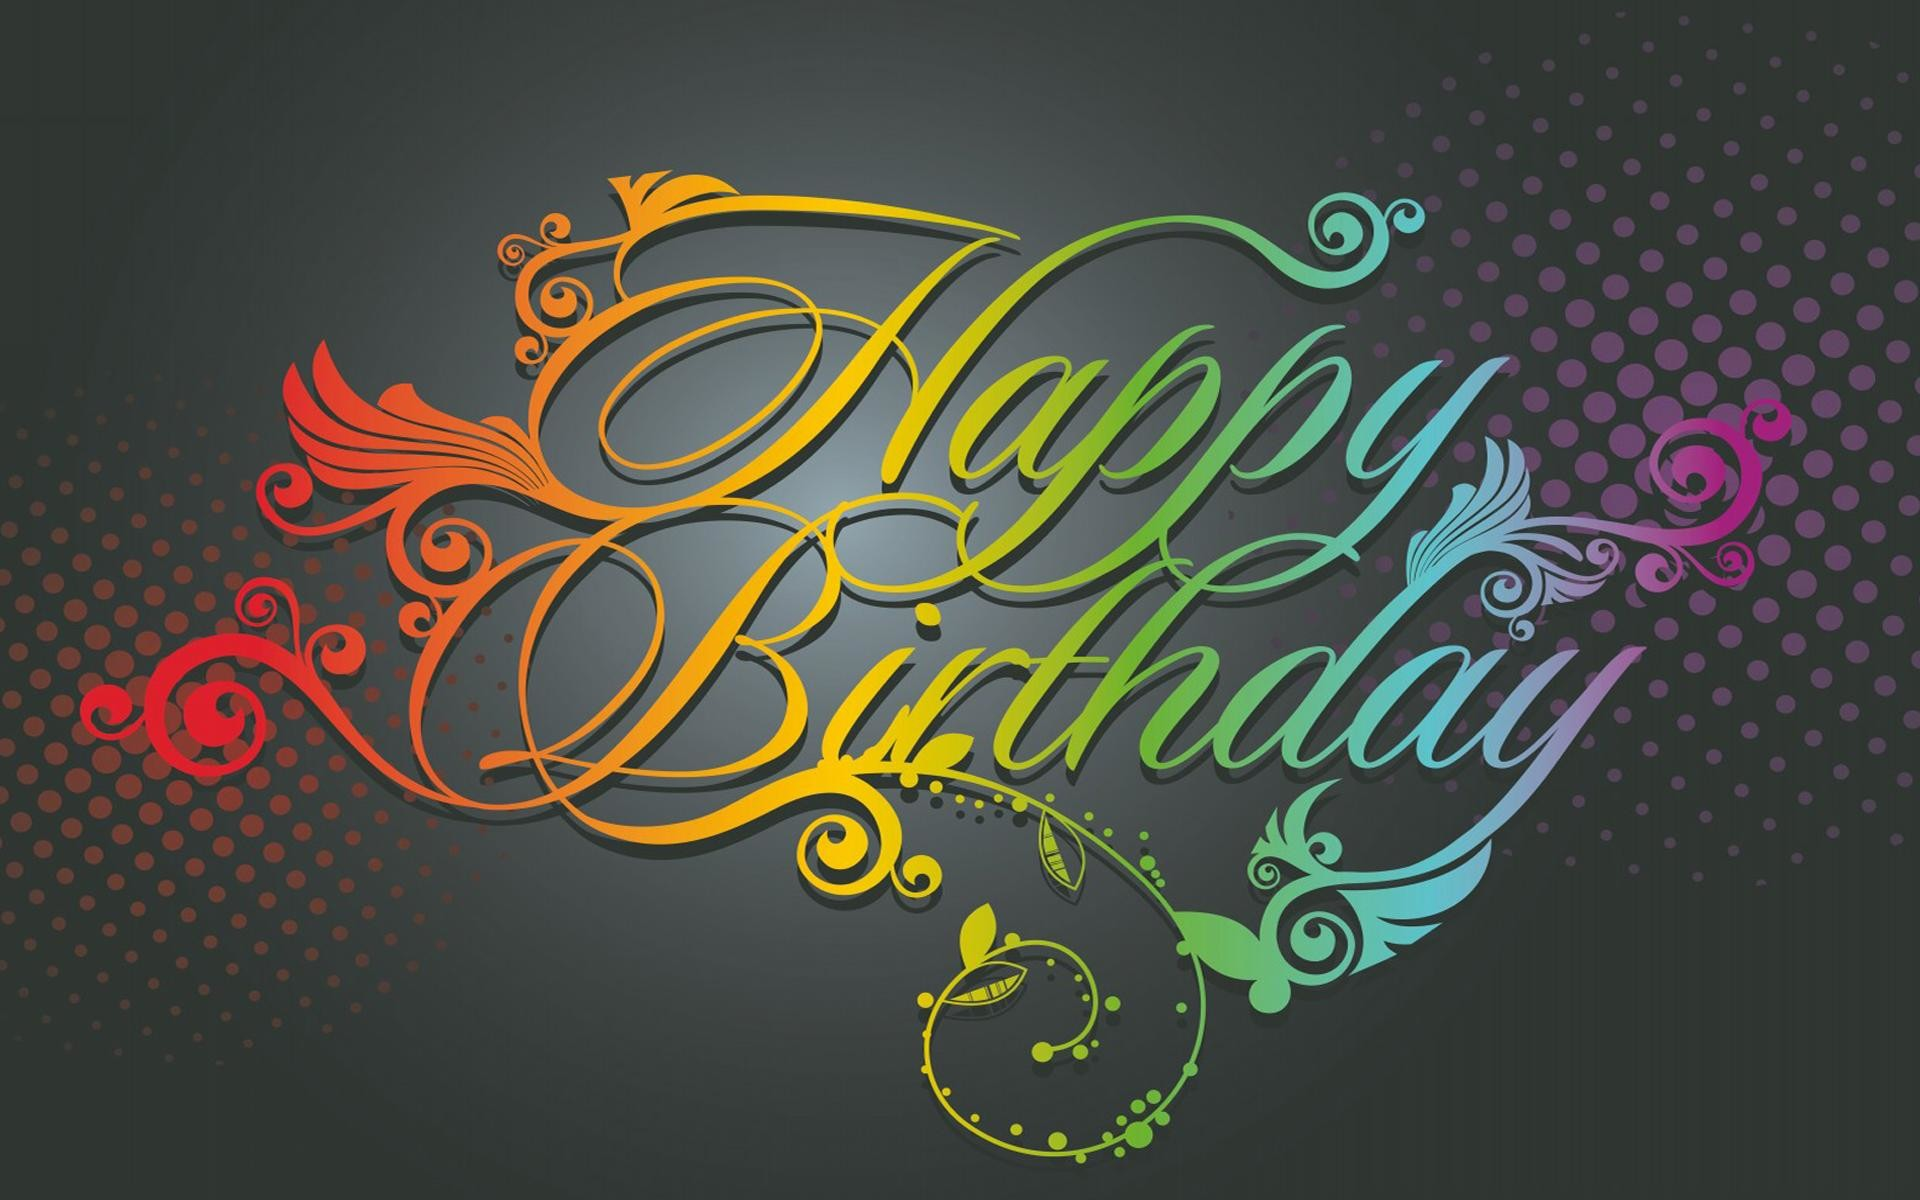 Happy-birthday-new-image-wallpapers-HD